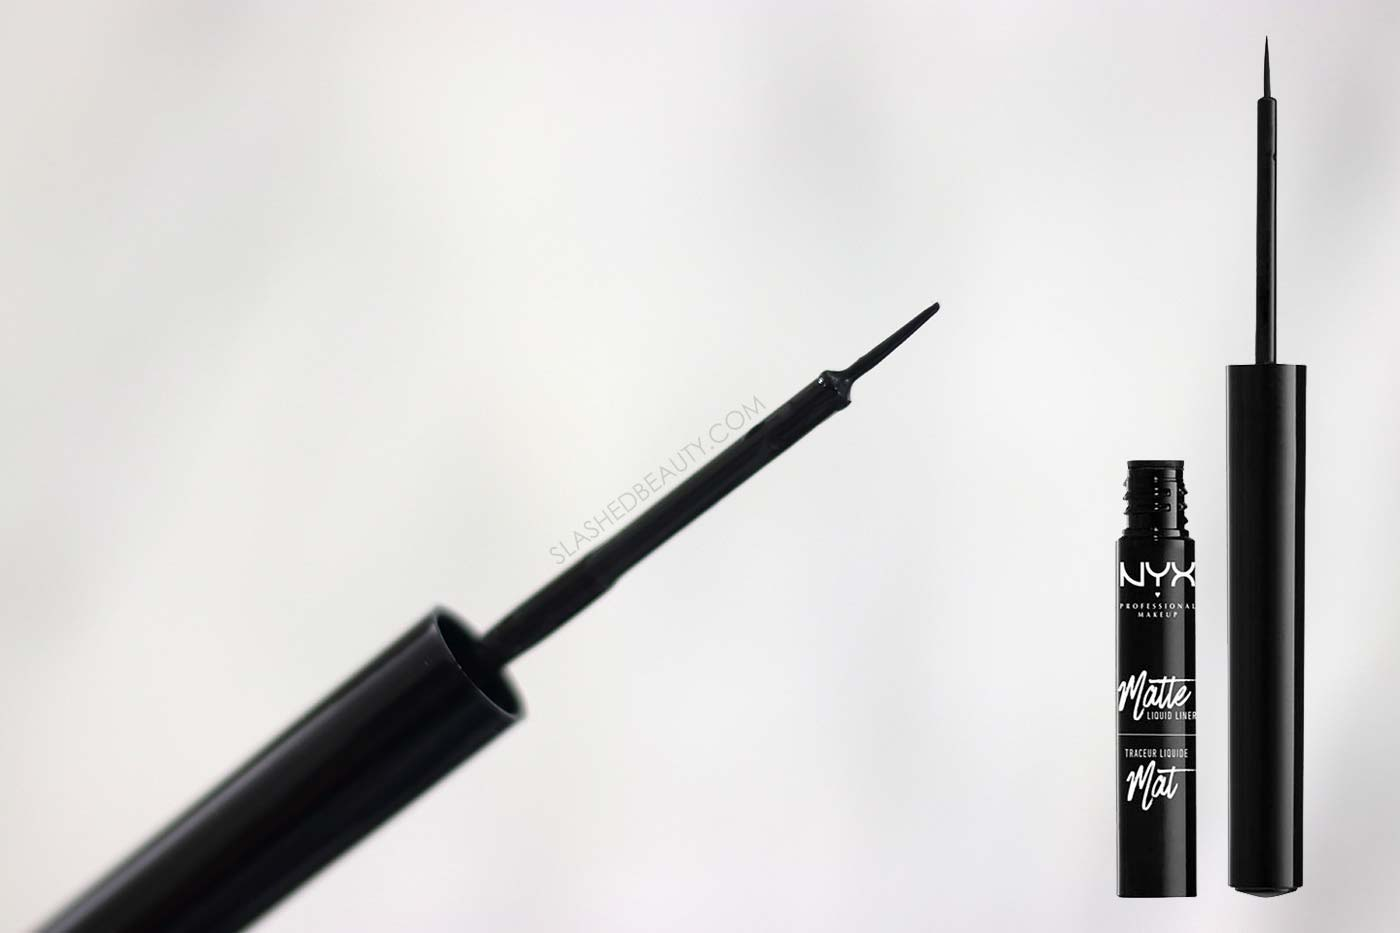 NYX Matte Liquid Liner Review | The 4 Best Drugstore Liquid Eyeliners | Slashed Beauty